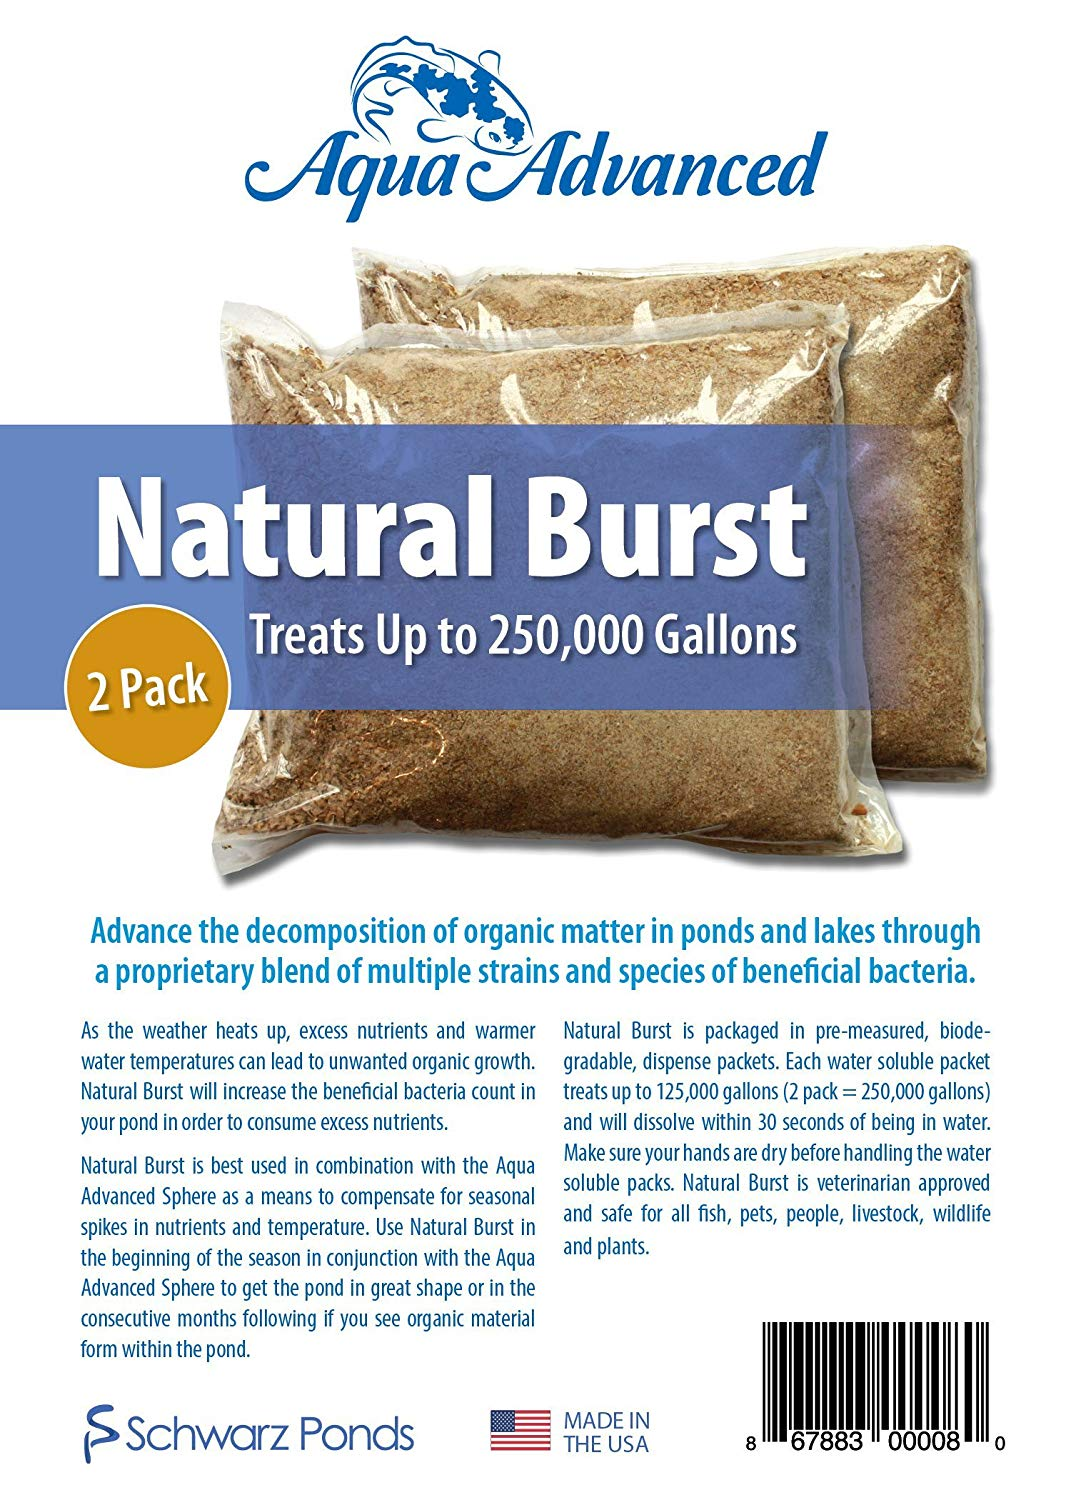 Aqua Advanced Natural Burst (2 Pack) - Solid Bacteria, Reduces Organic Growth, Large Pond Water Treatment